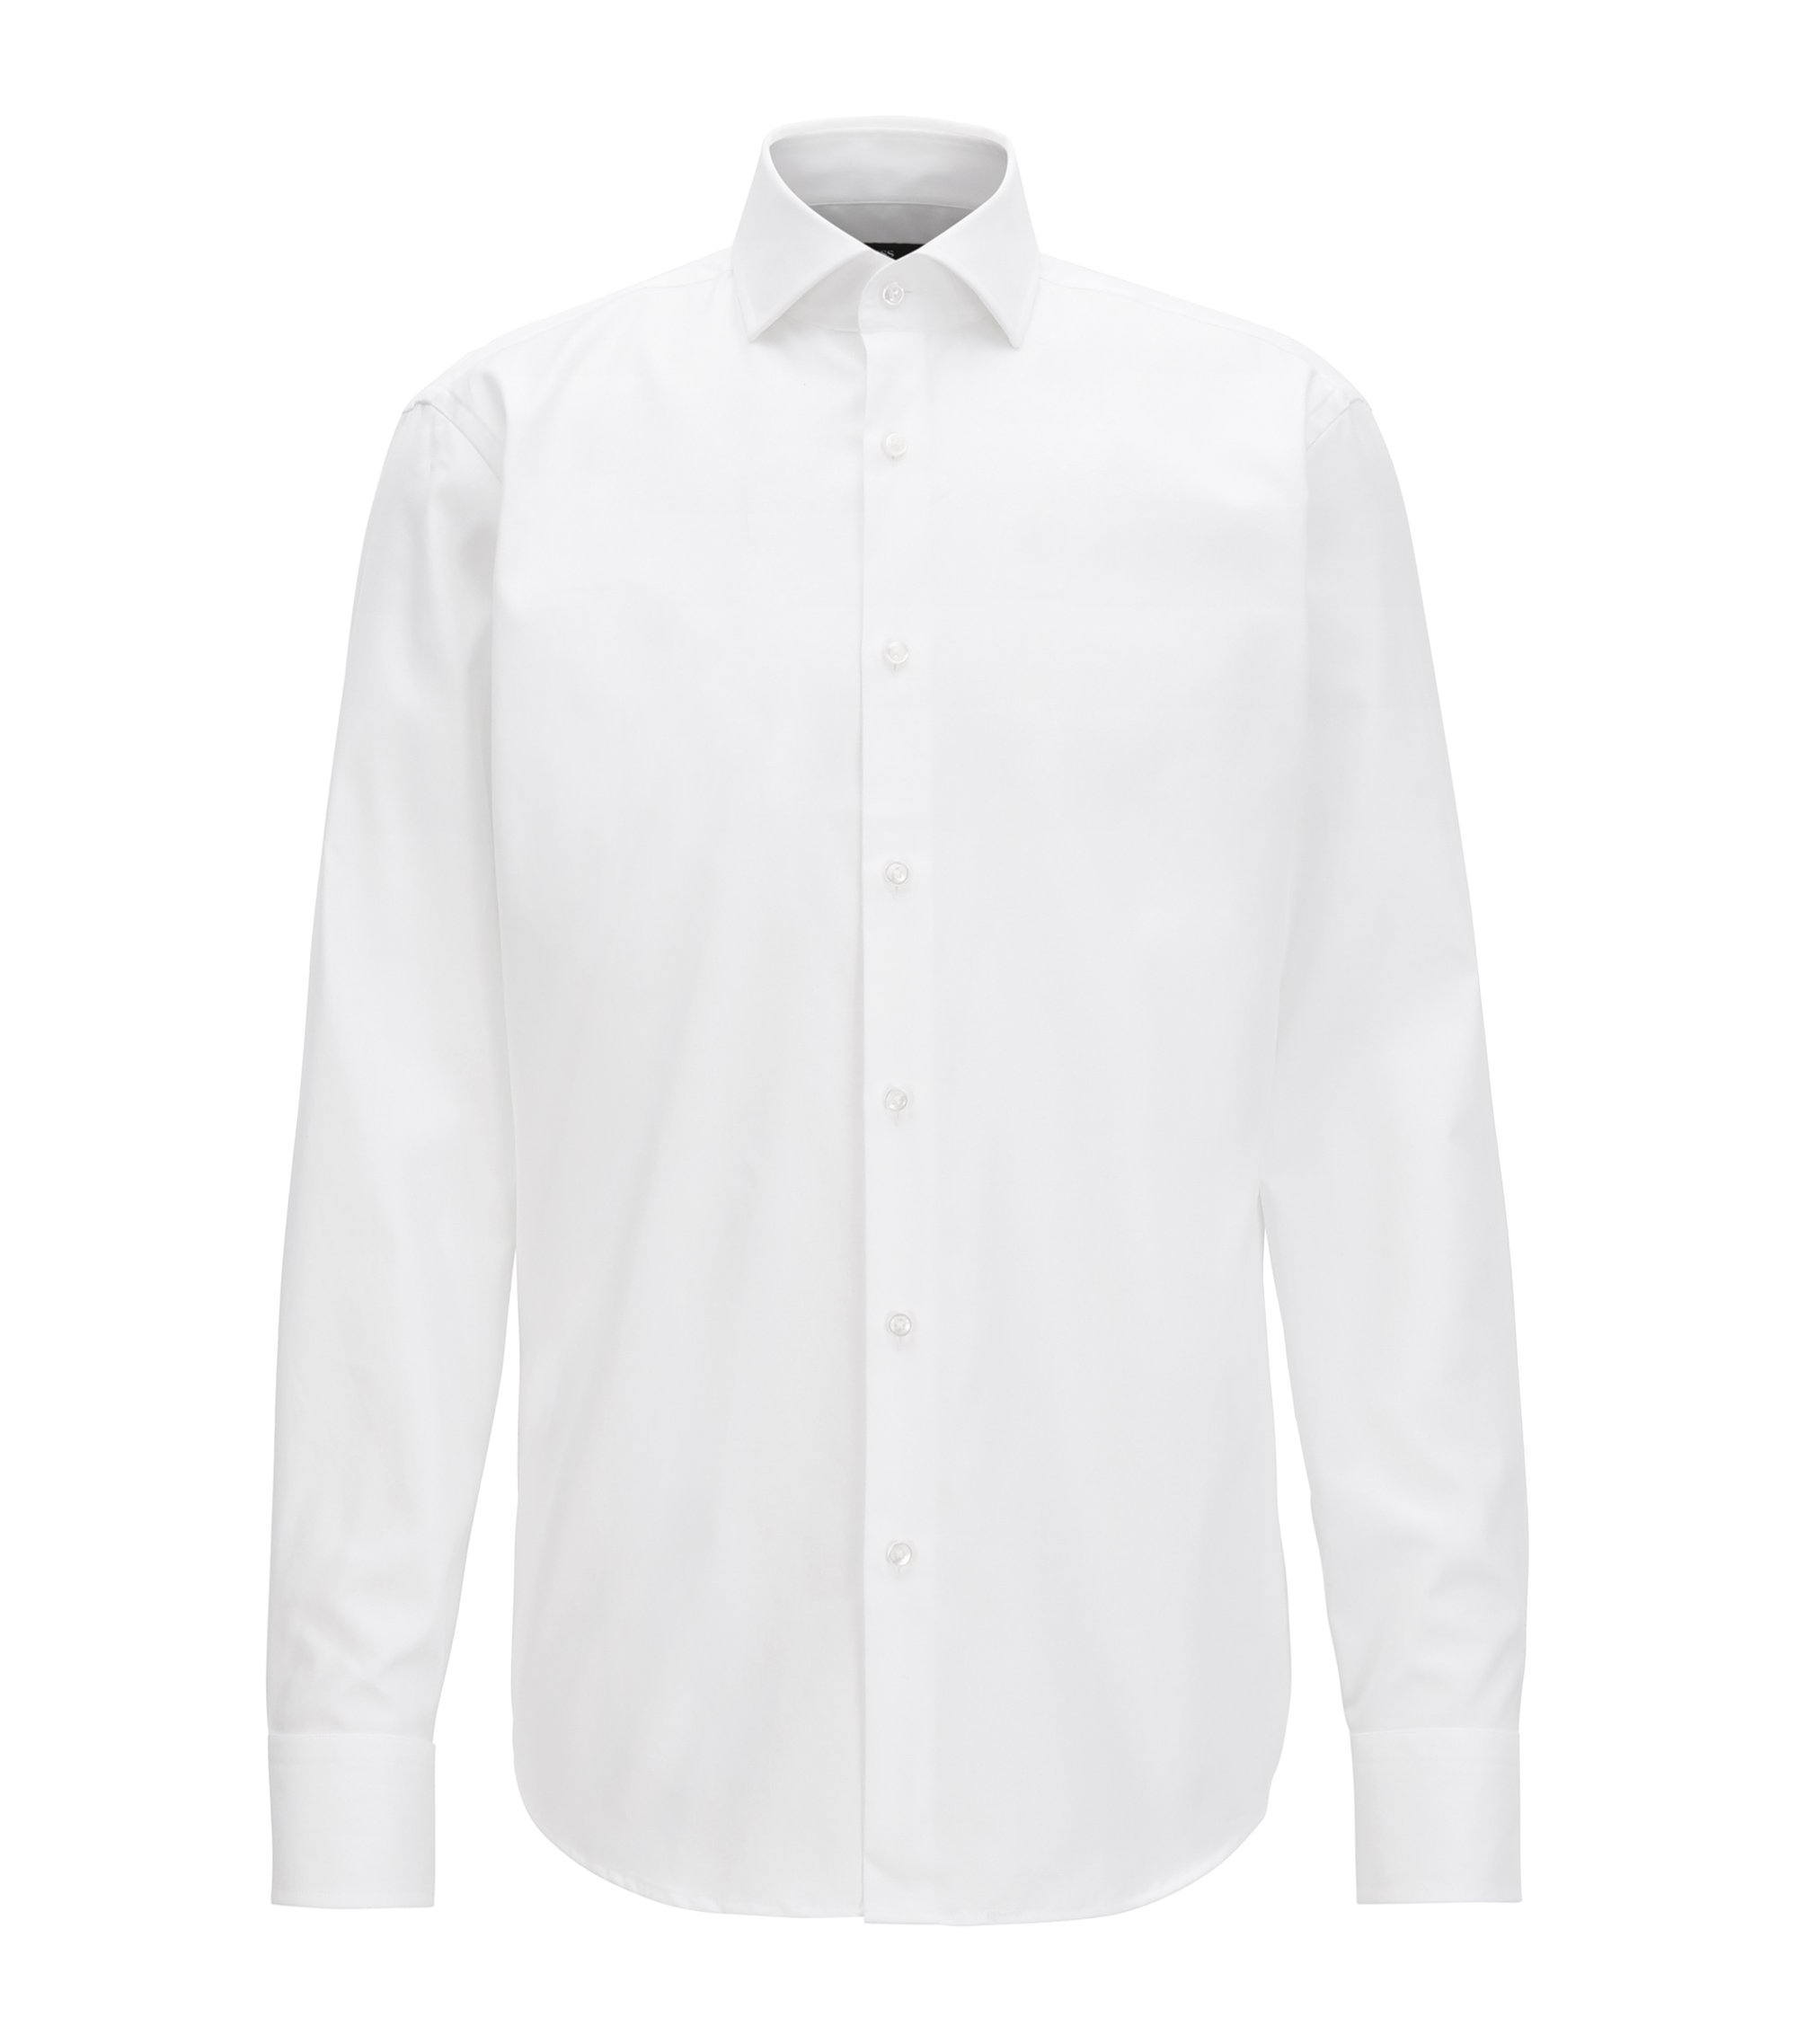 Regular-fit shirt in yarn-dyed cotton twill, White